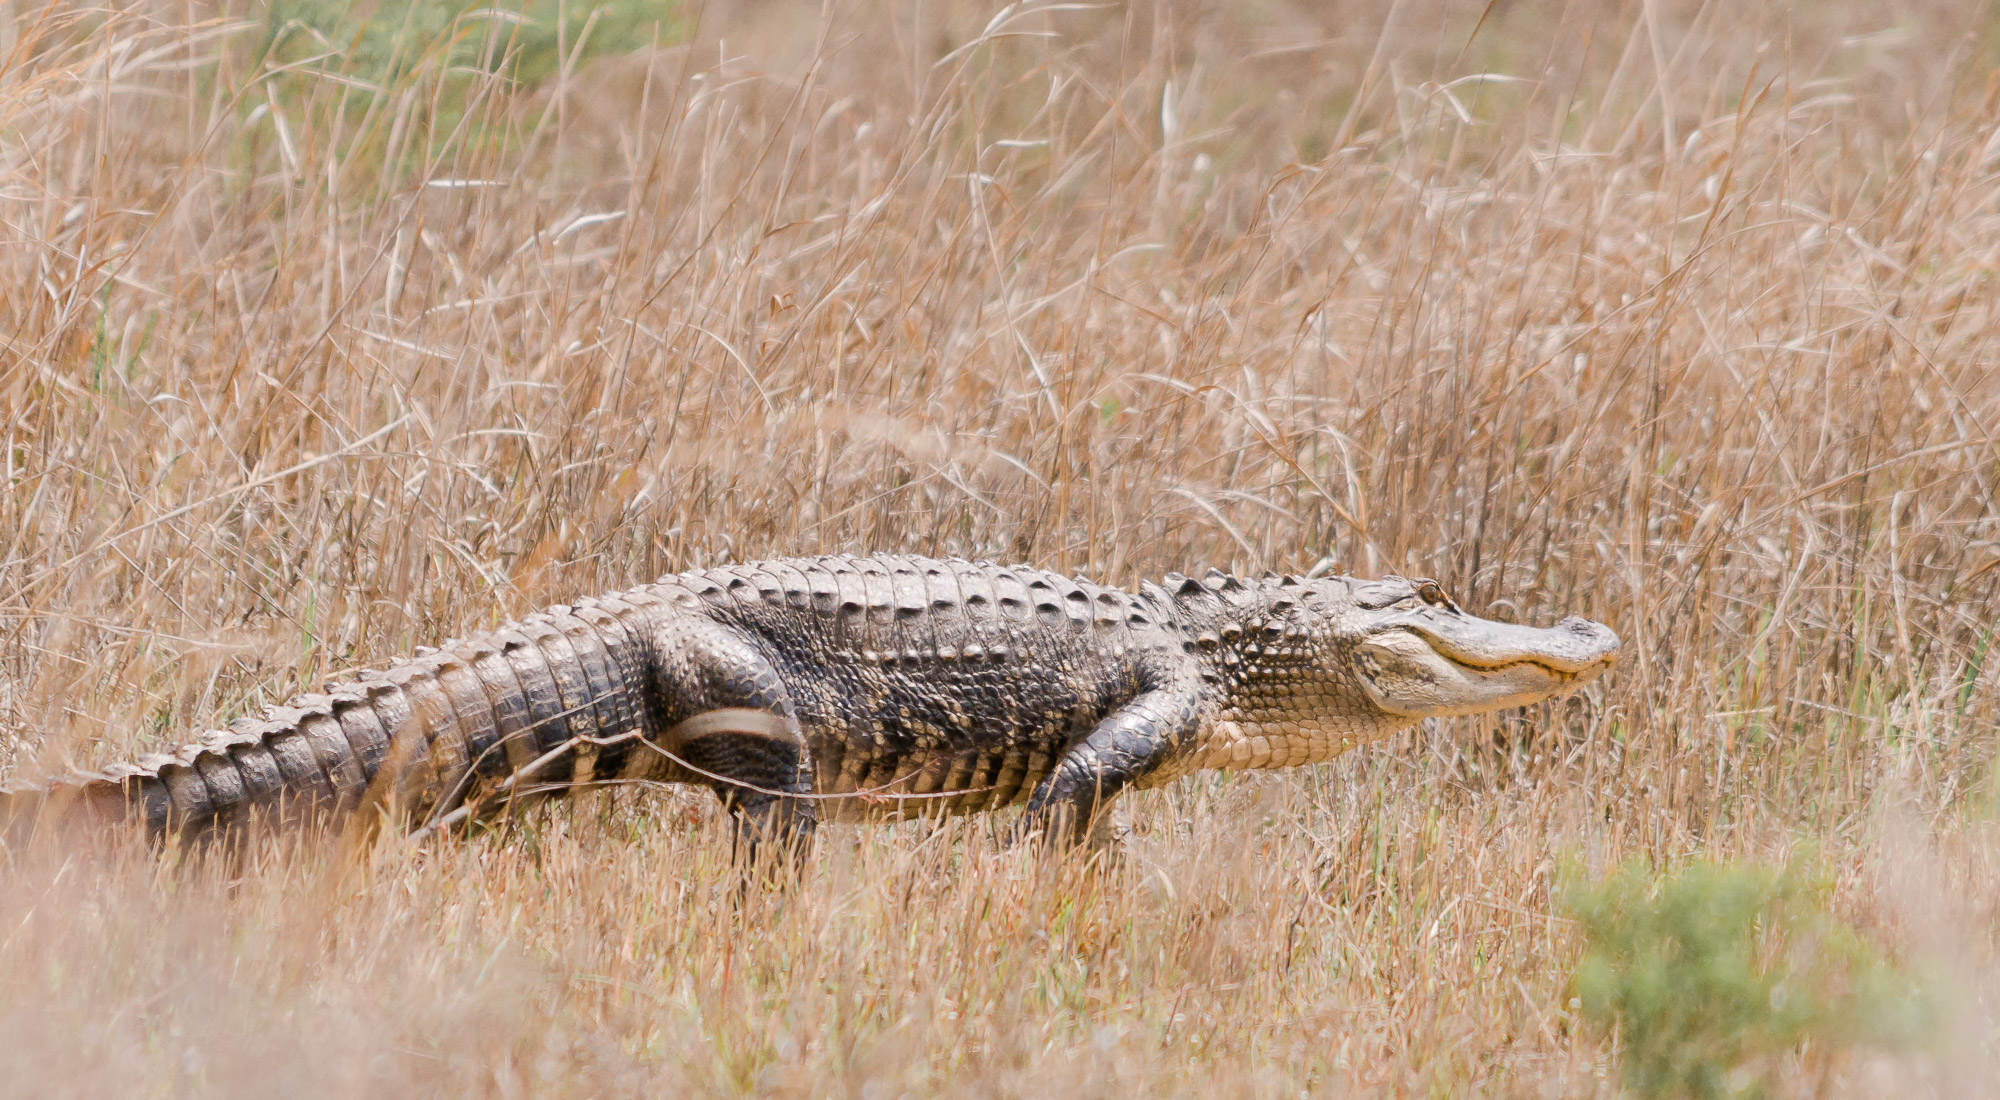 American Alligator during the dry season - Kissimmee Prairie Preserve State Park, Florida